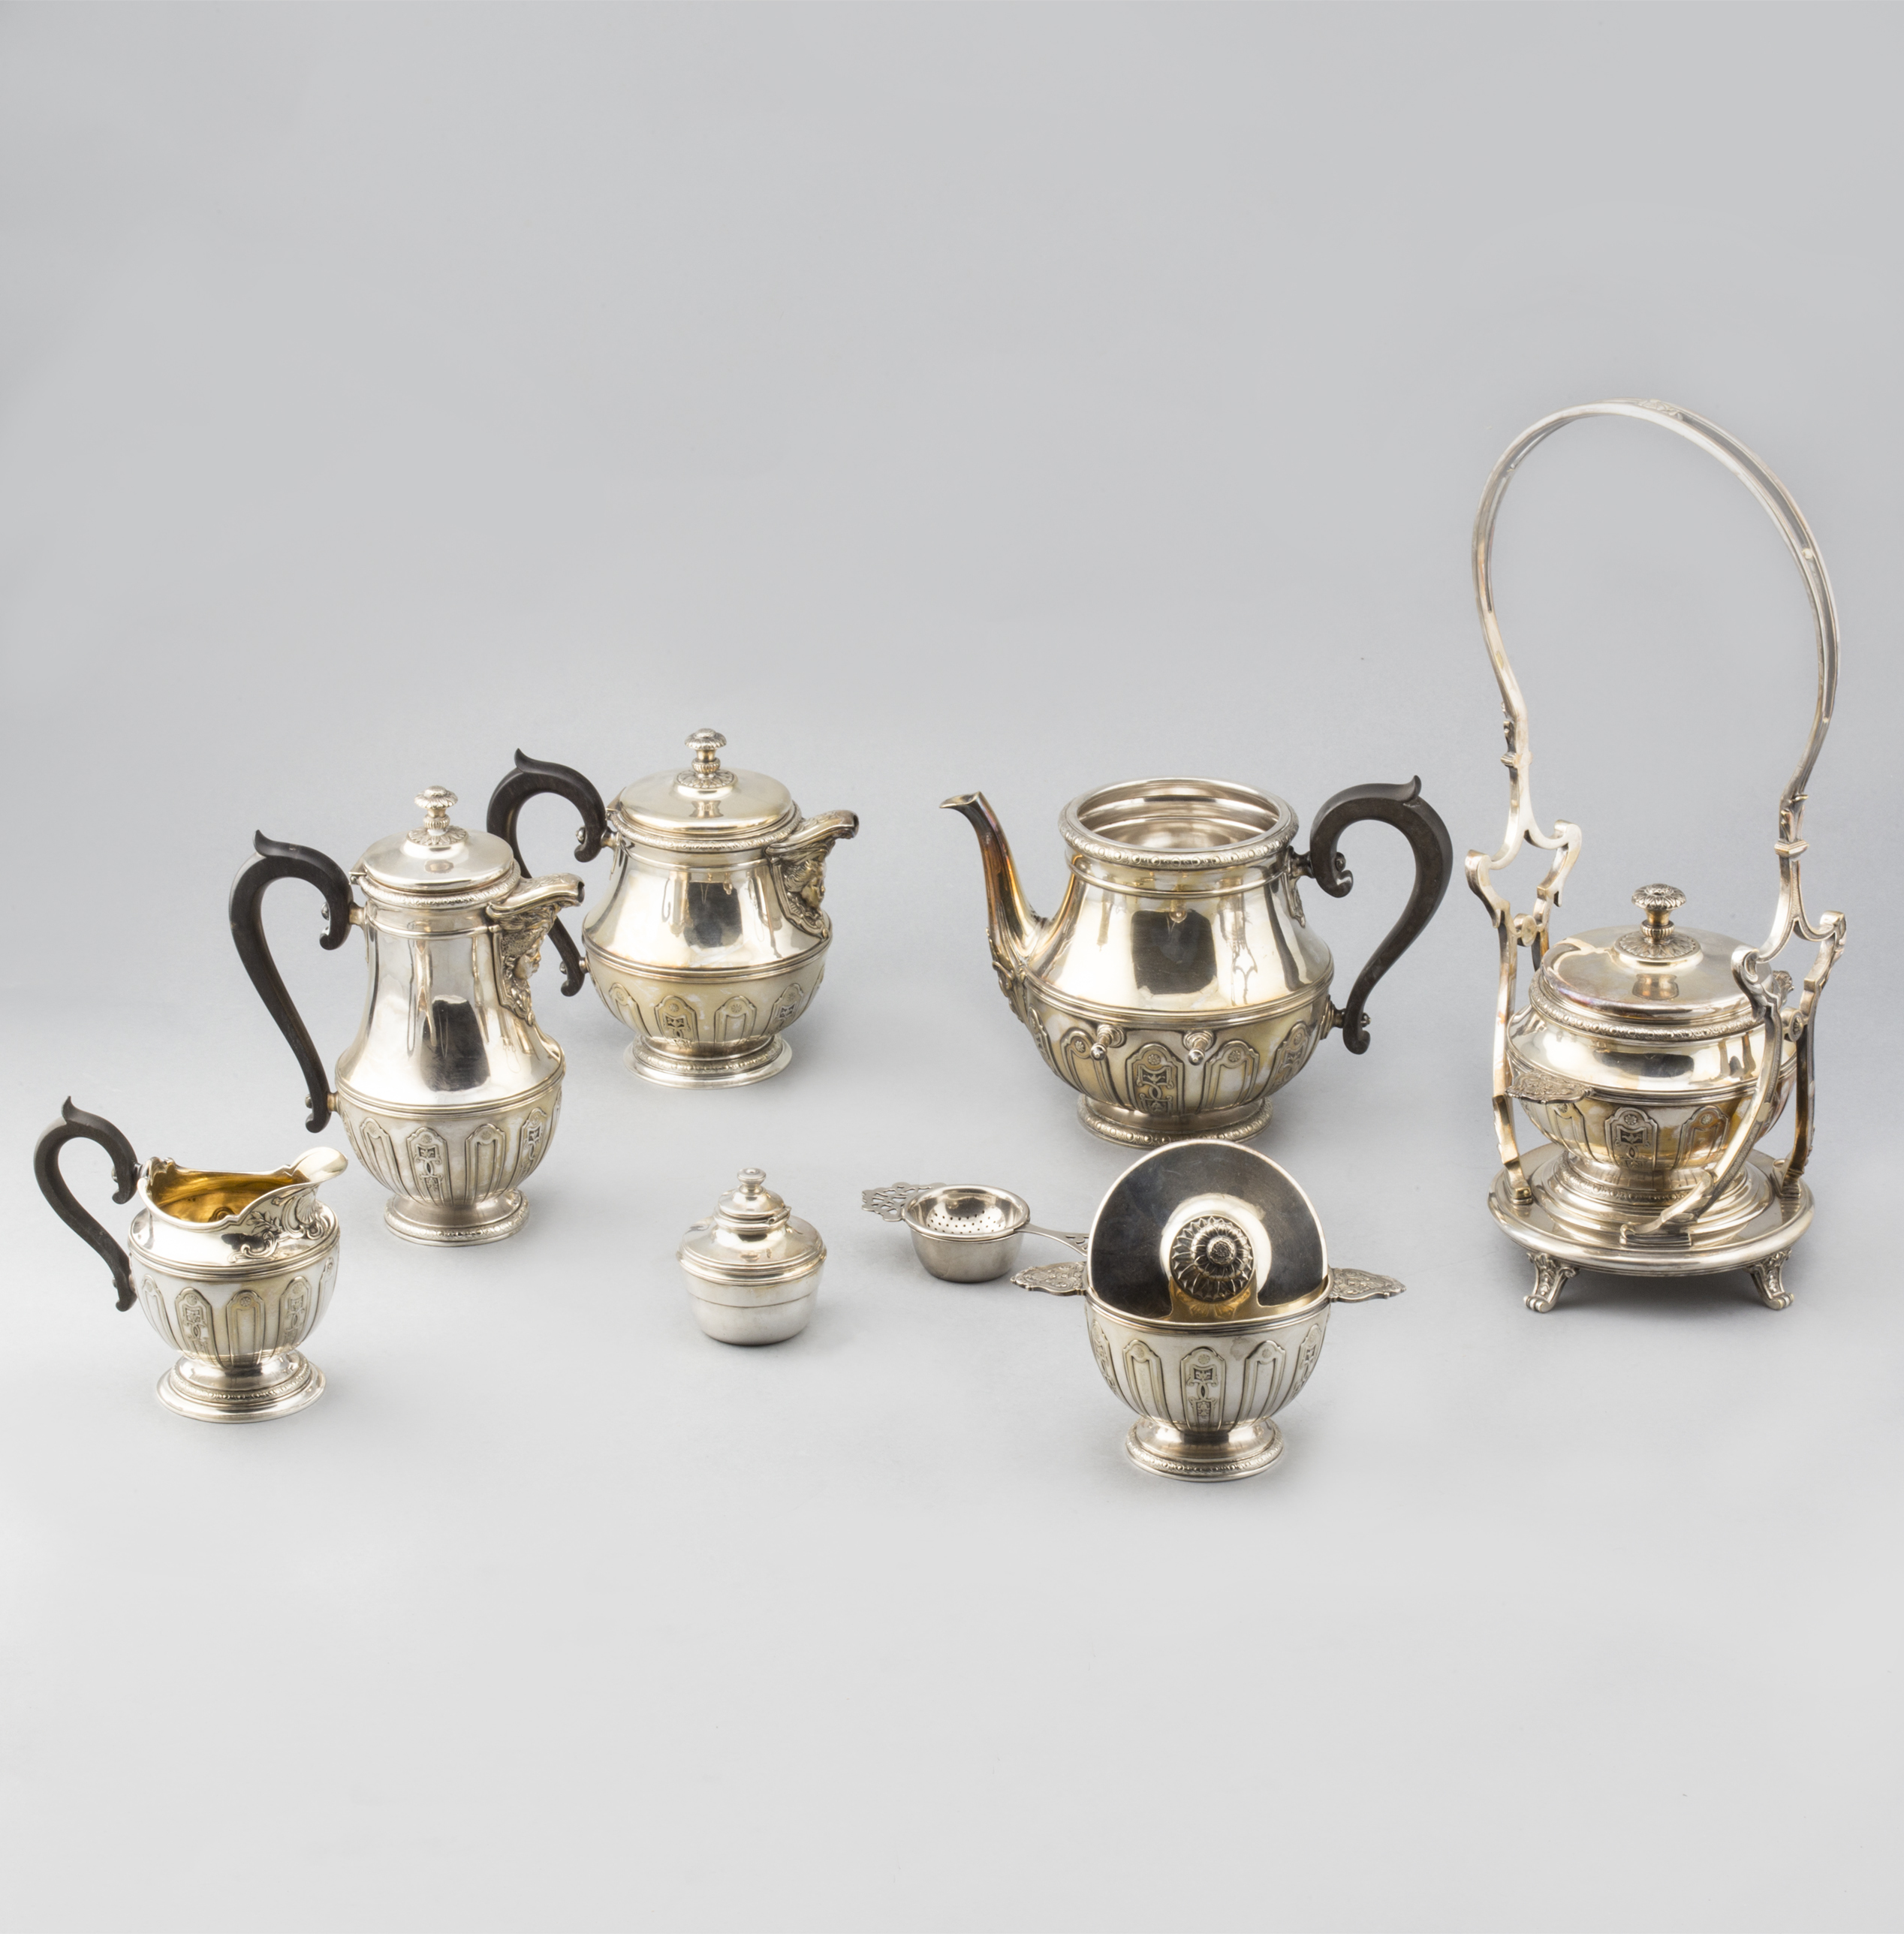 Coffee and tea set in Christofle silver-plated metal, early